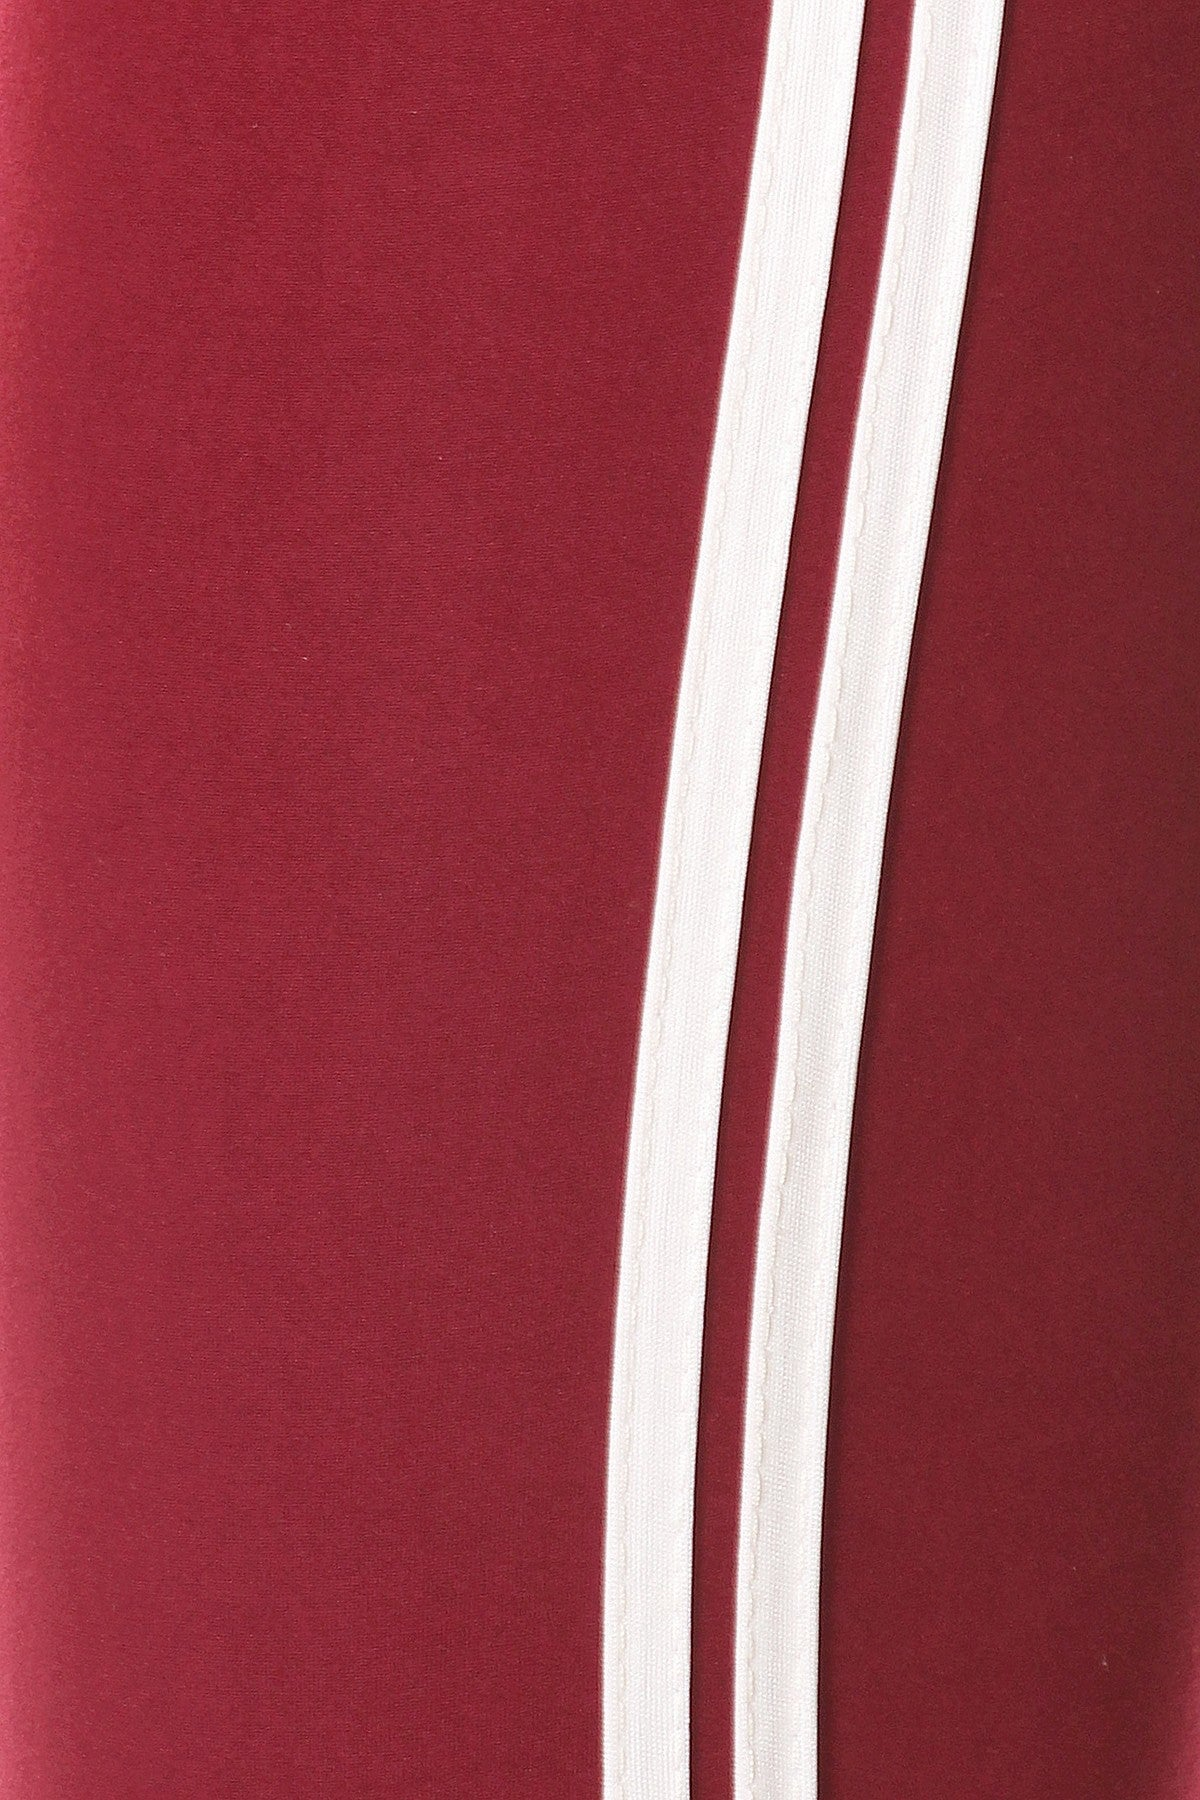 Stripped Red And White Jogger - steven wick